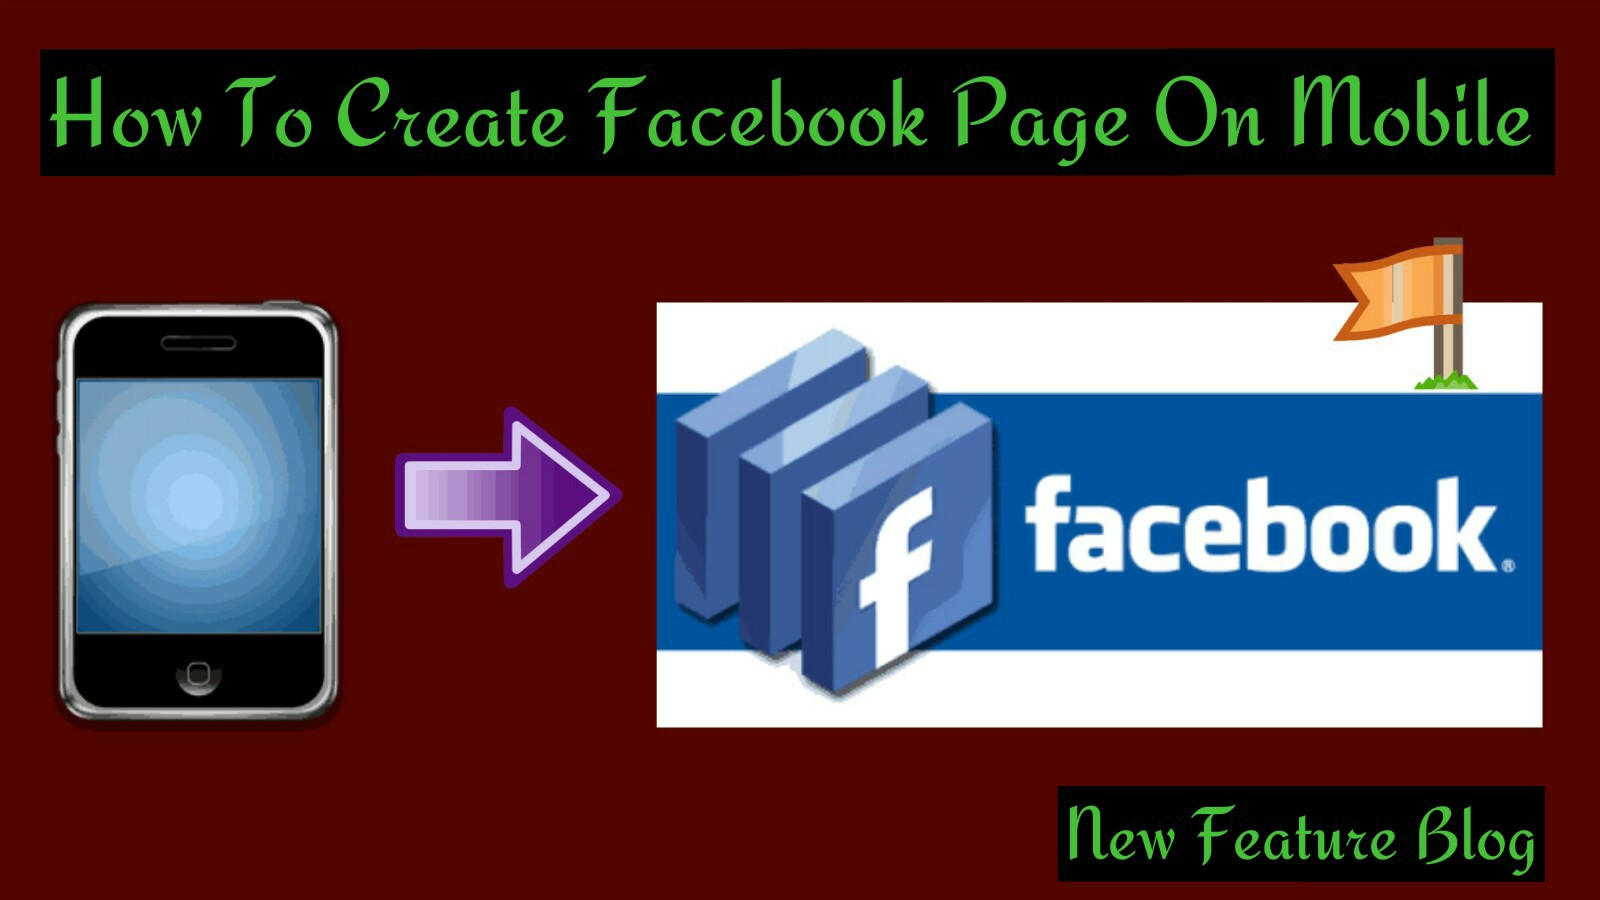 How-to-create-facebook-page-on-mobile